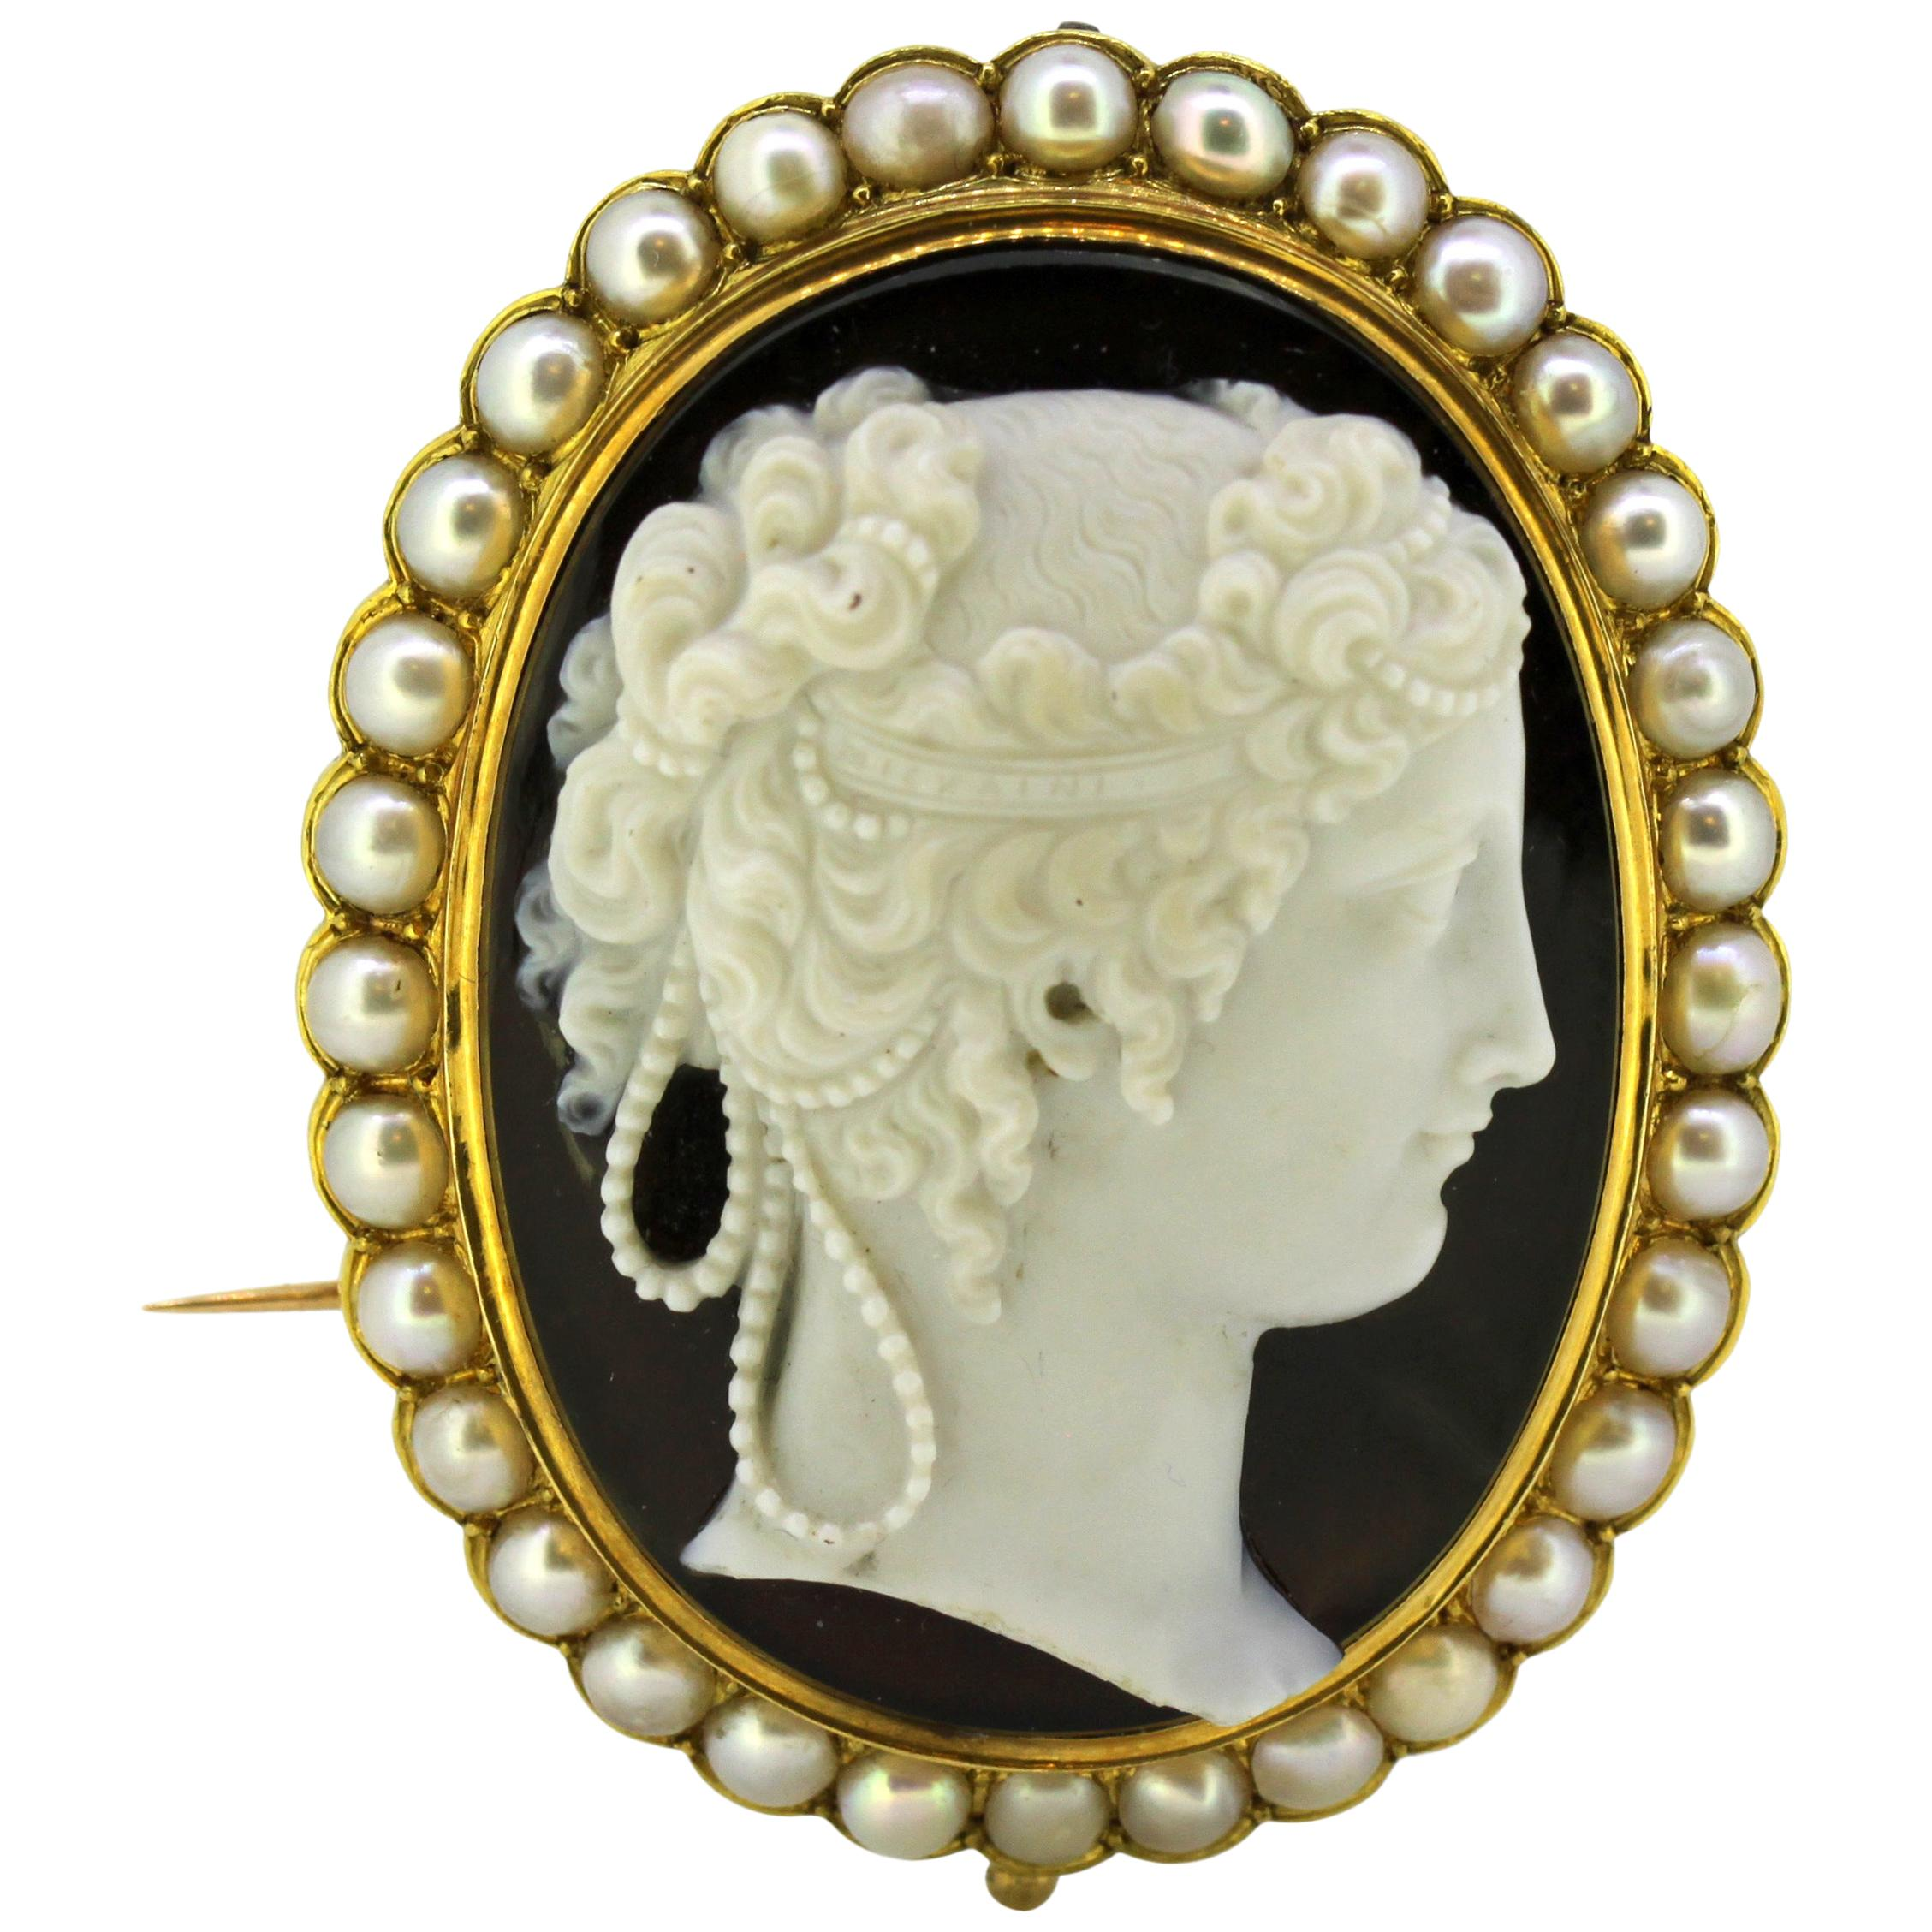 Cameo Brooches - 212 For Sale on 1stdibs